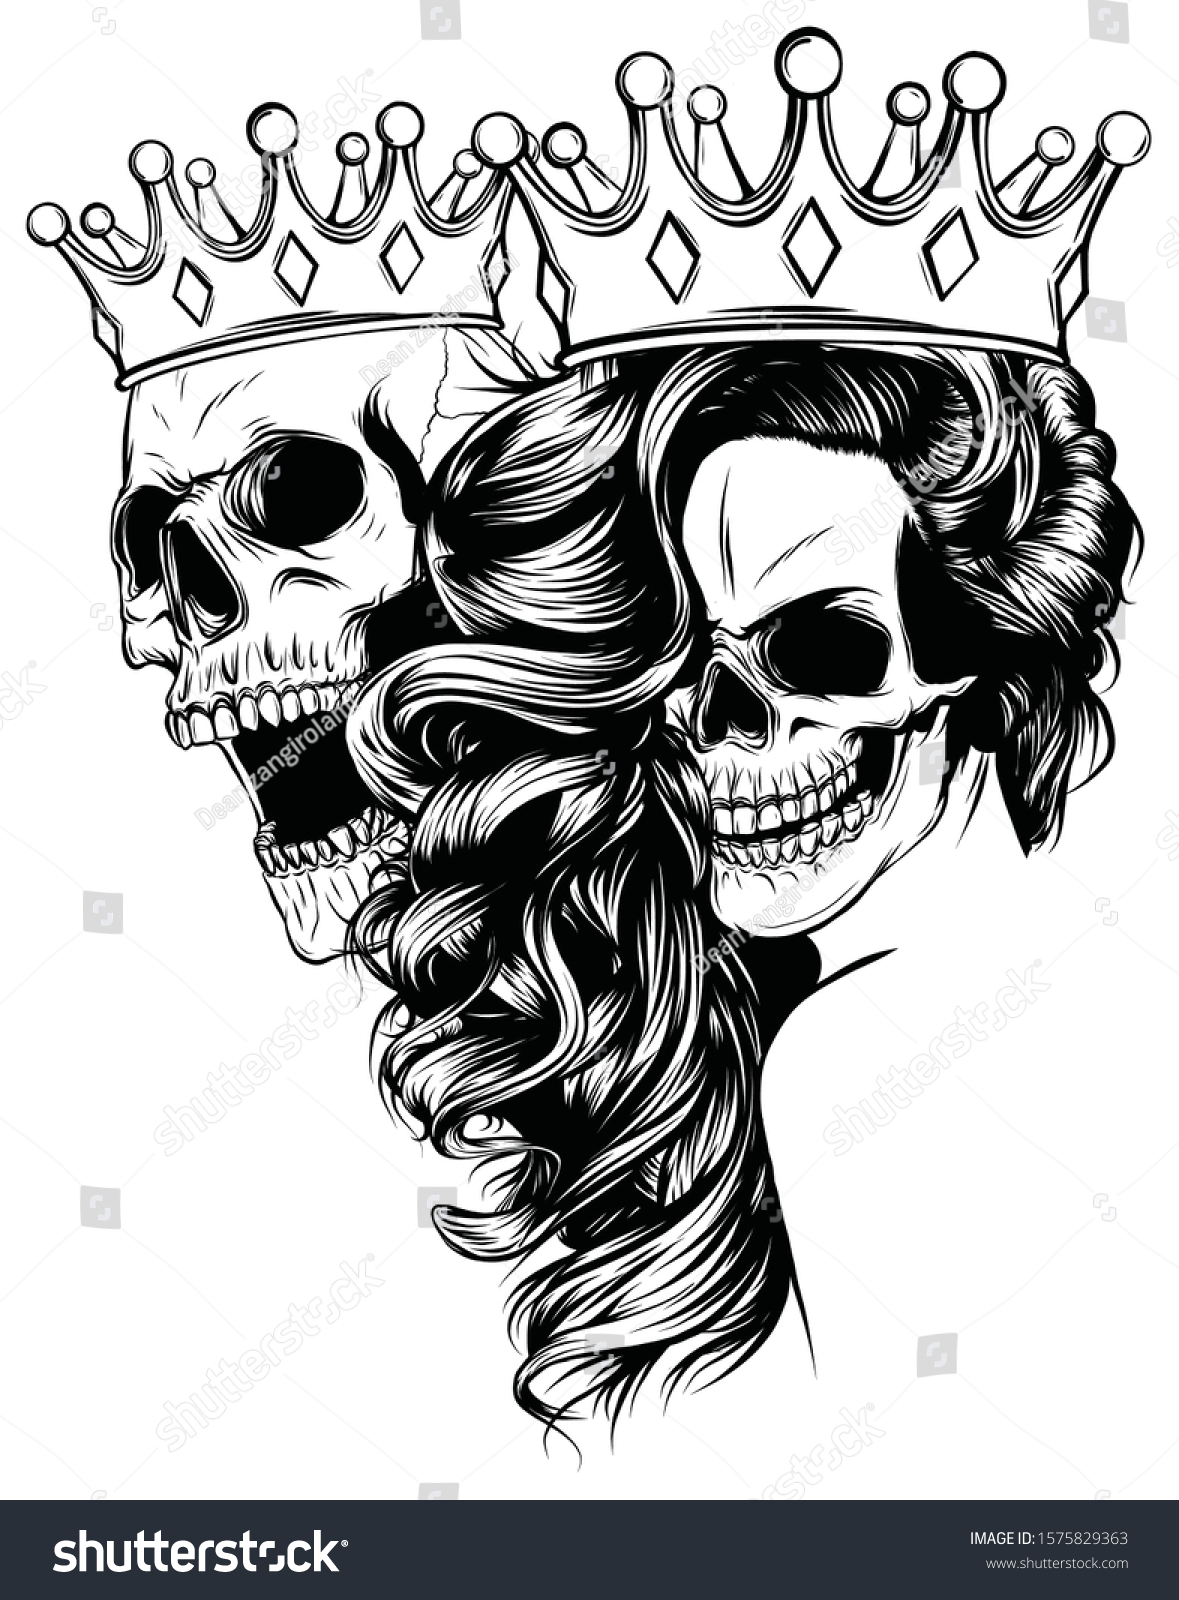 Tattoo King Queen Death Portrait Skull Stock Vector Royalty Free 1575829363 | see more about monami frost, tattoos and piercings. https www shutterstock com image vector tattoo king queen death portrait skull 1575829363